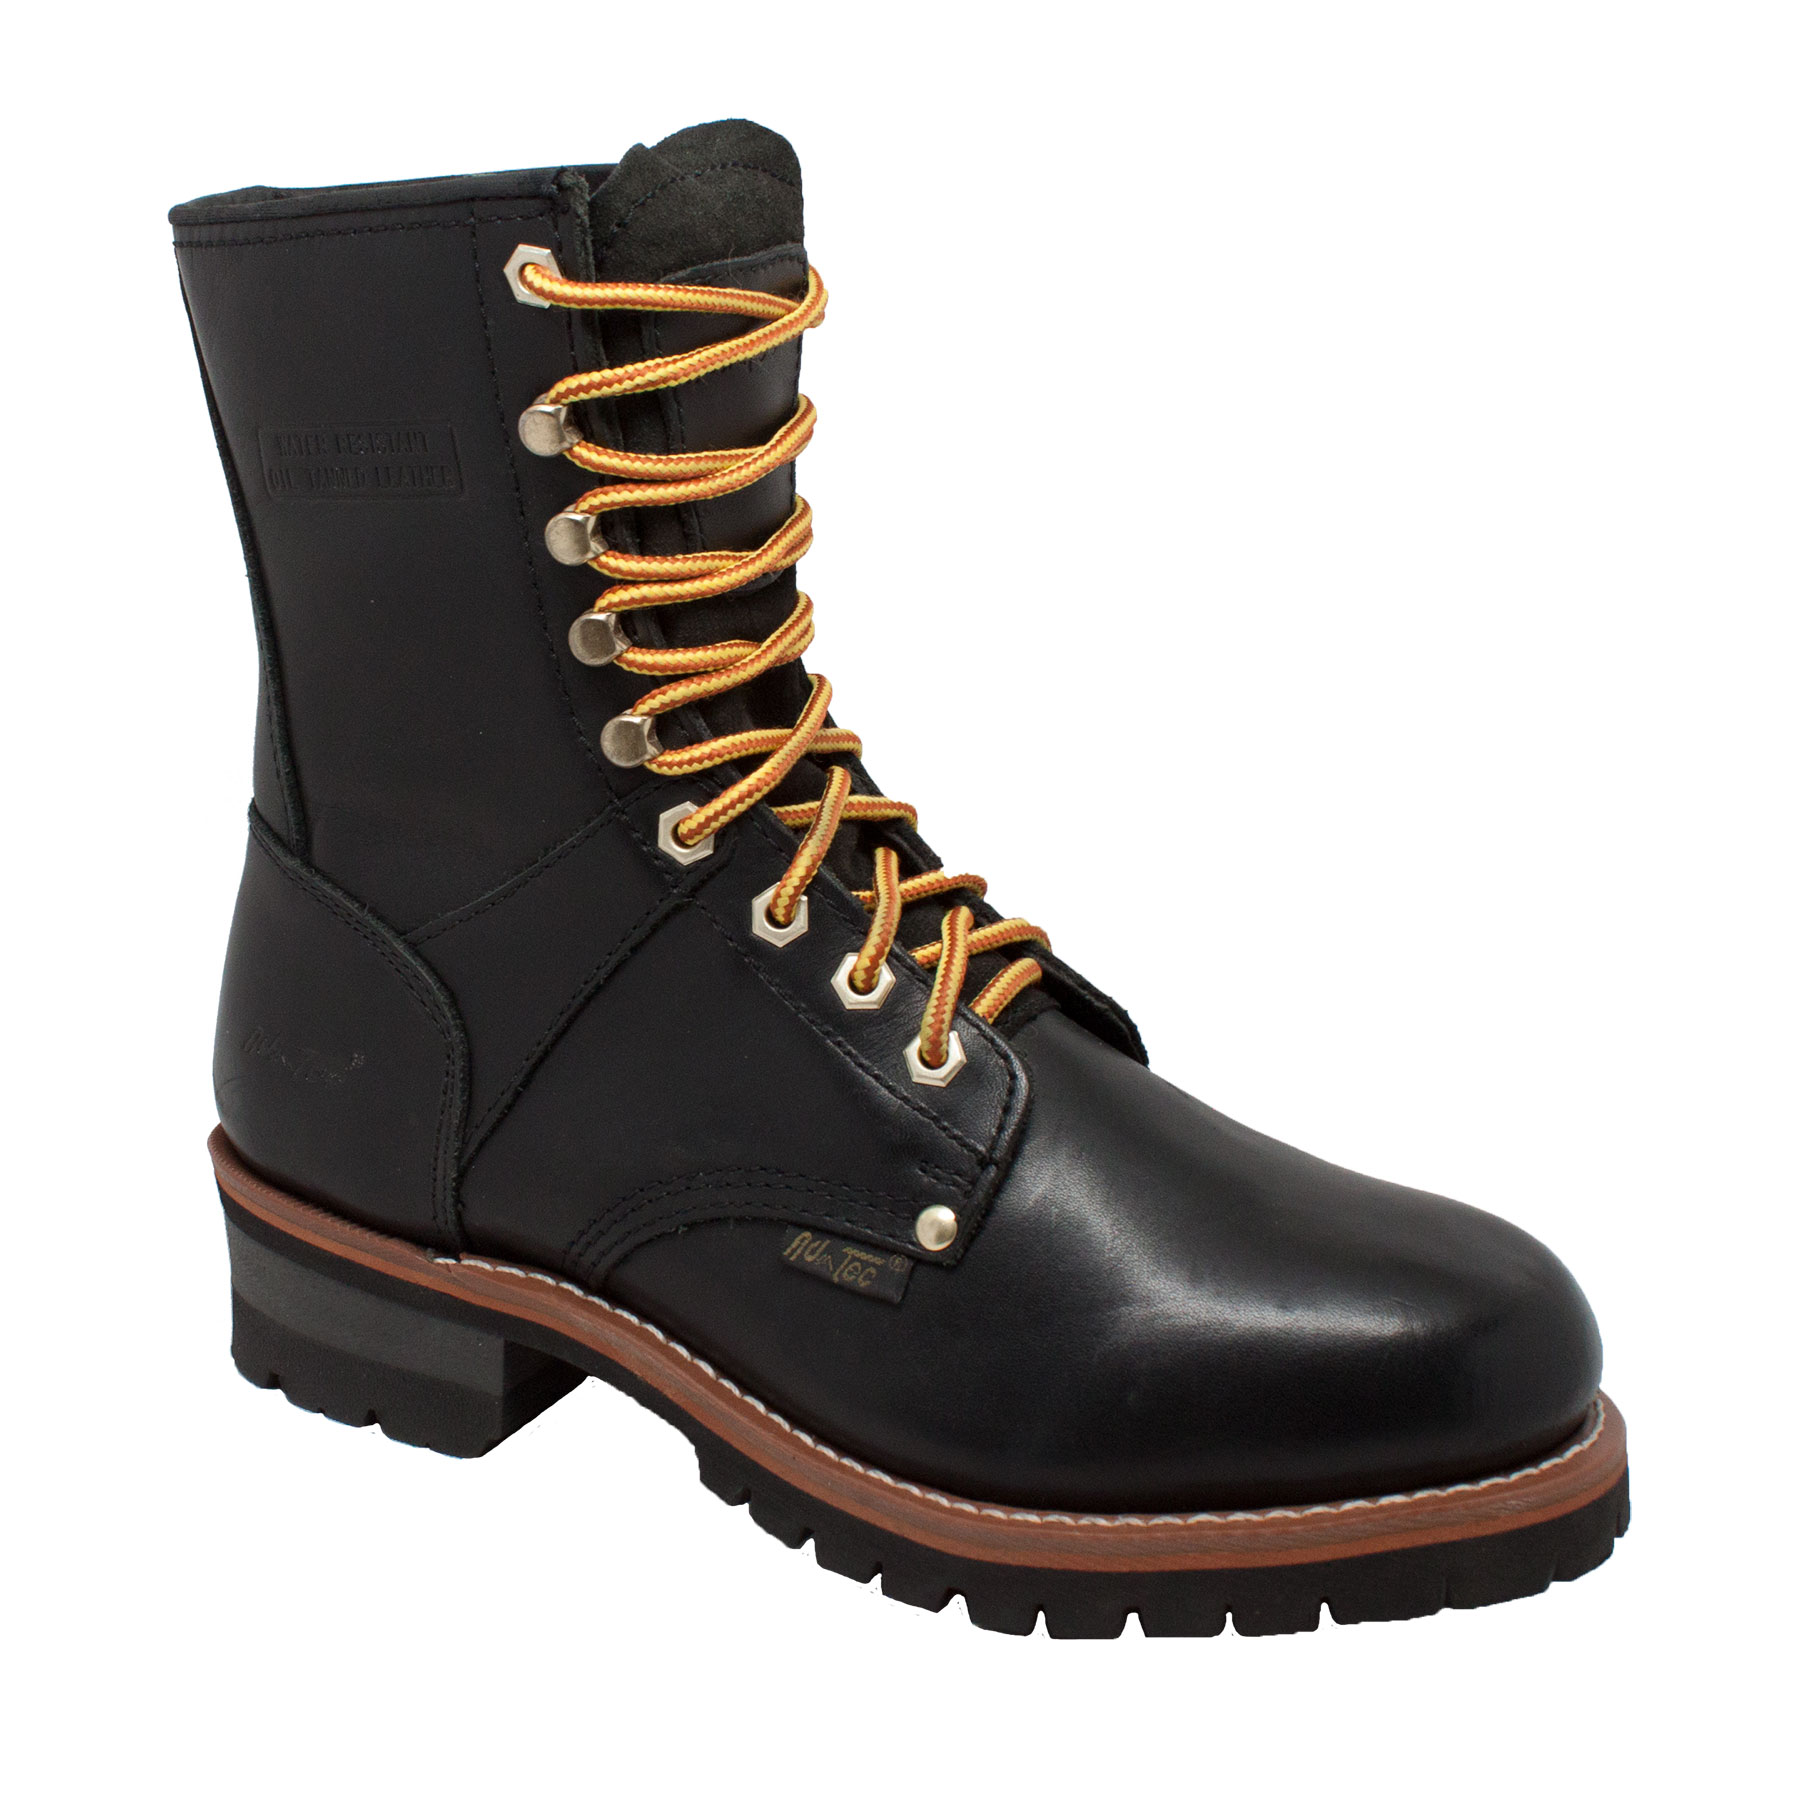 """Adtec Men's 9"""" Logger Boots, Black 6.5 M by Overstock"""